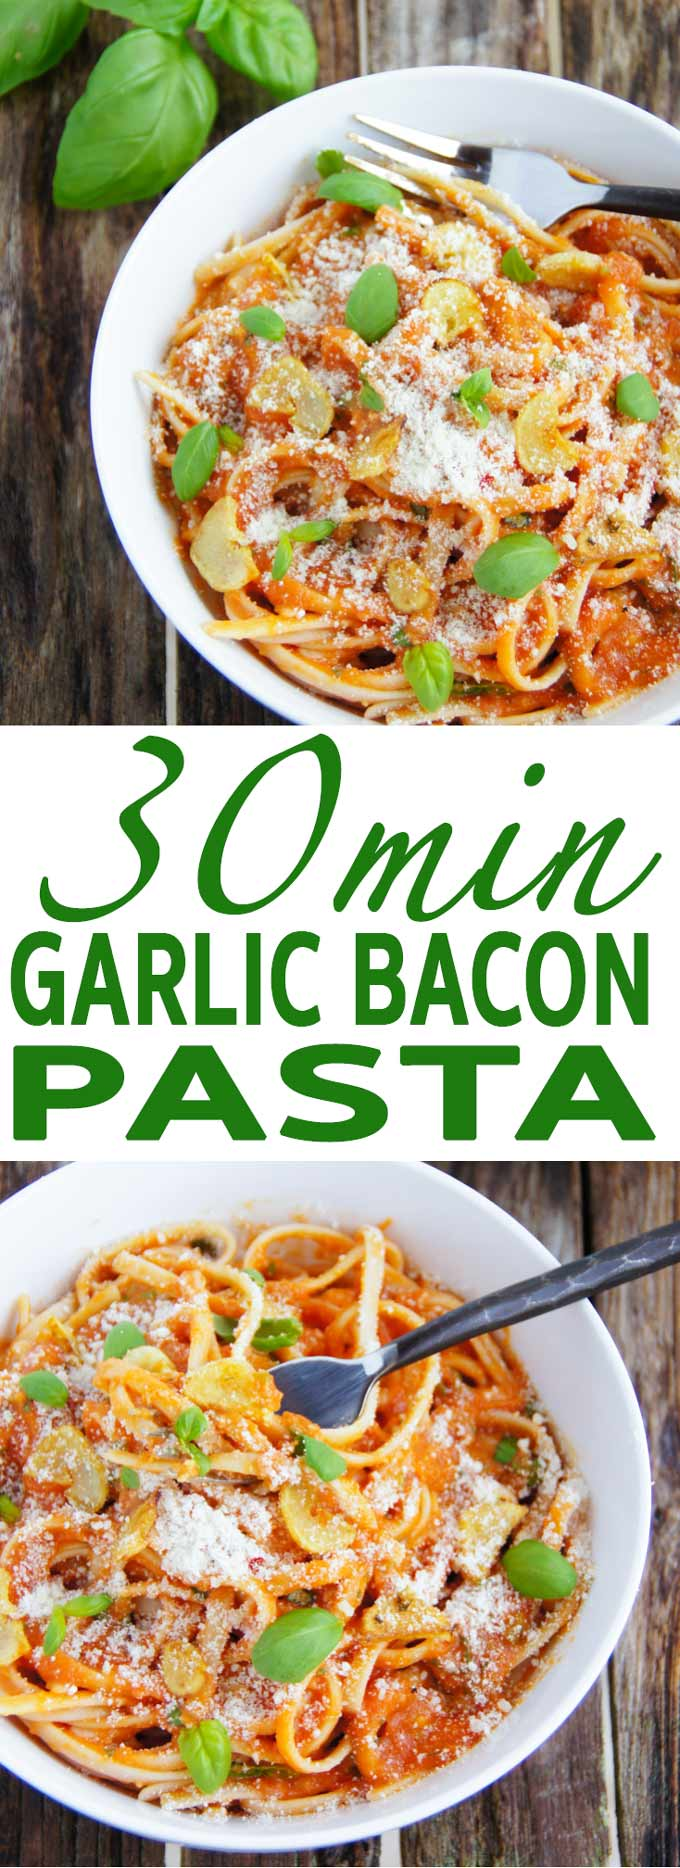 Authentic 30min Bacon Garlic Pasta recipe is a traditional, easy, every-day Italian comfort food made with simple, best quality ingredients.